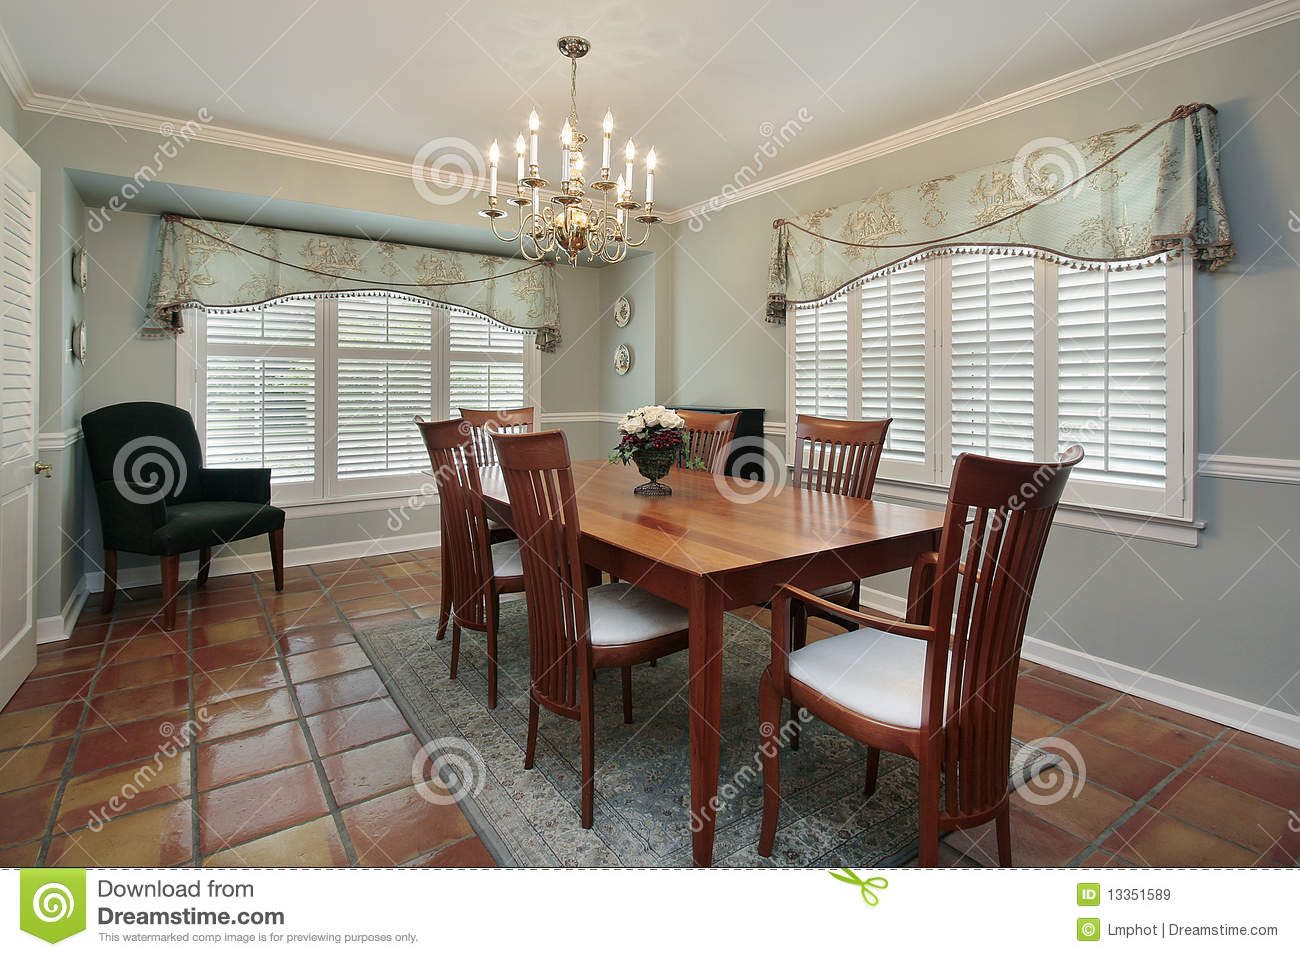 Dining room with spanish floor tiles stock image image of room dining room with spanish floor tiles dailygadgetfo Choice Image